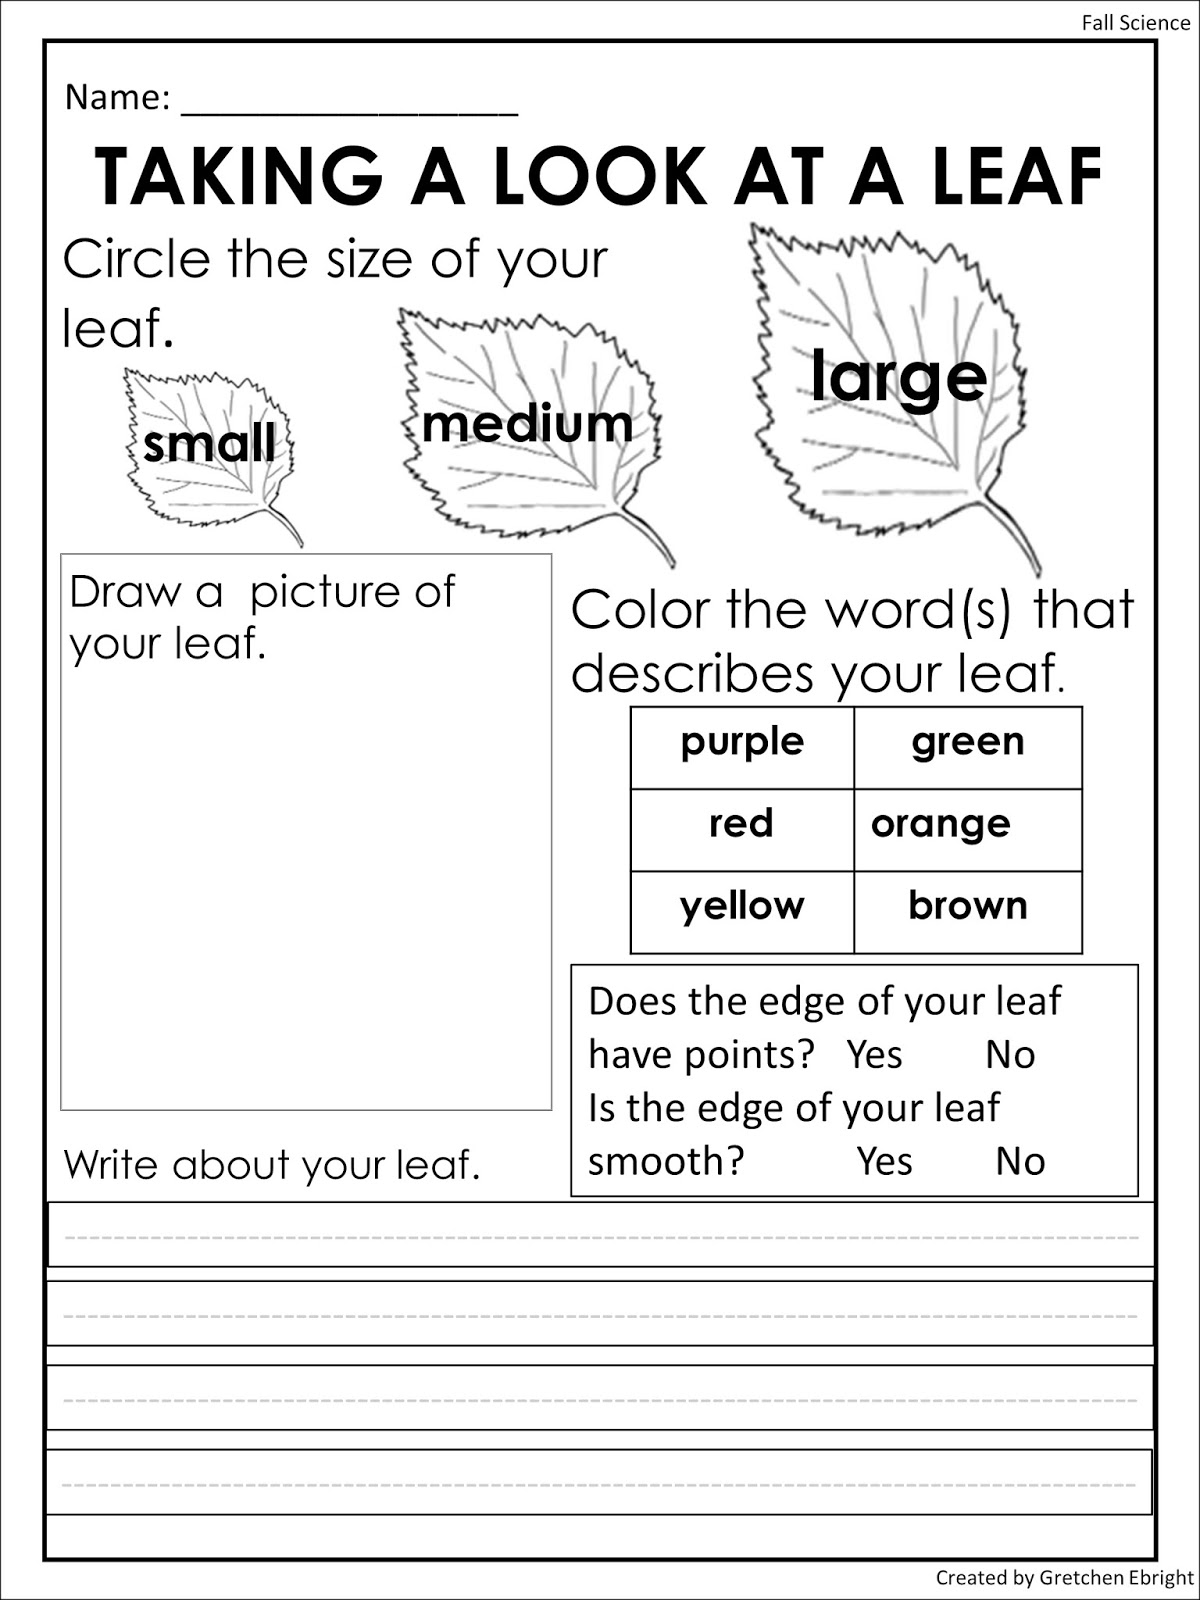 Worksheets Science Observation Worksheet endless teaching ideas by gretchen ebright science fall i use observation sheets to go along with all these goodies allow children explore and record their observations